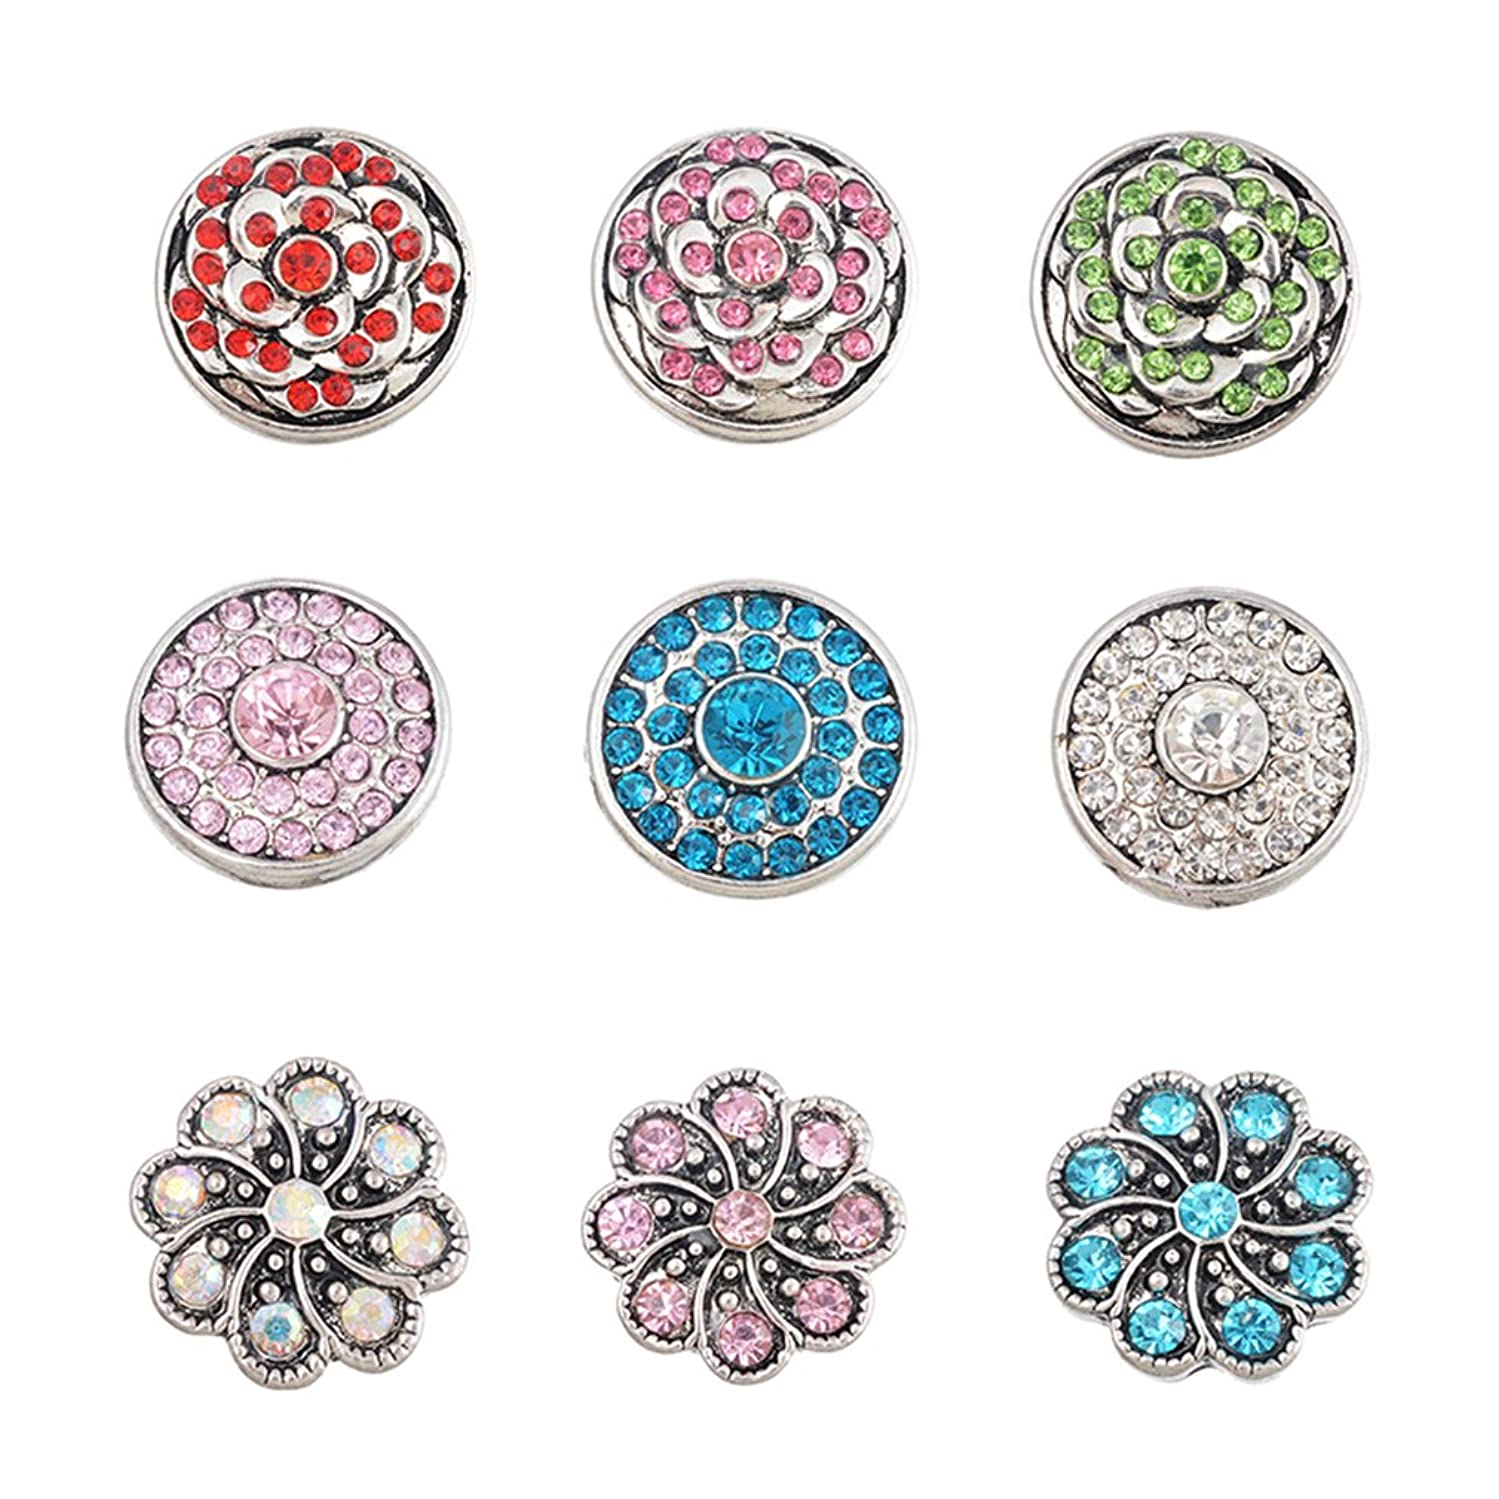 Souarts Pack of 9pcs Mix Rhinestone Round 5.5mm Size Snap Jewelry Charms